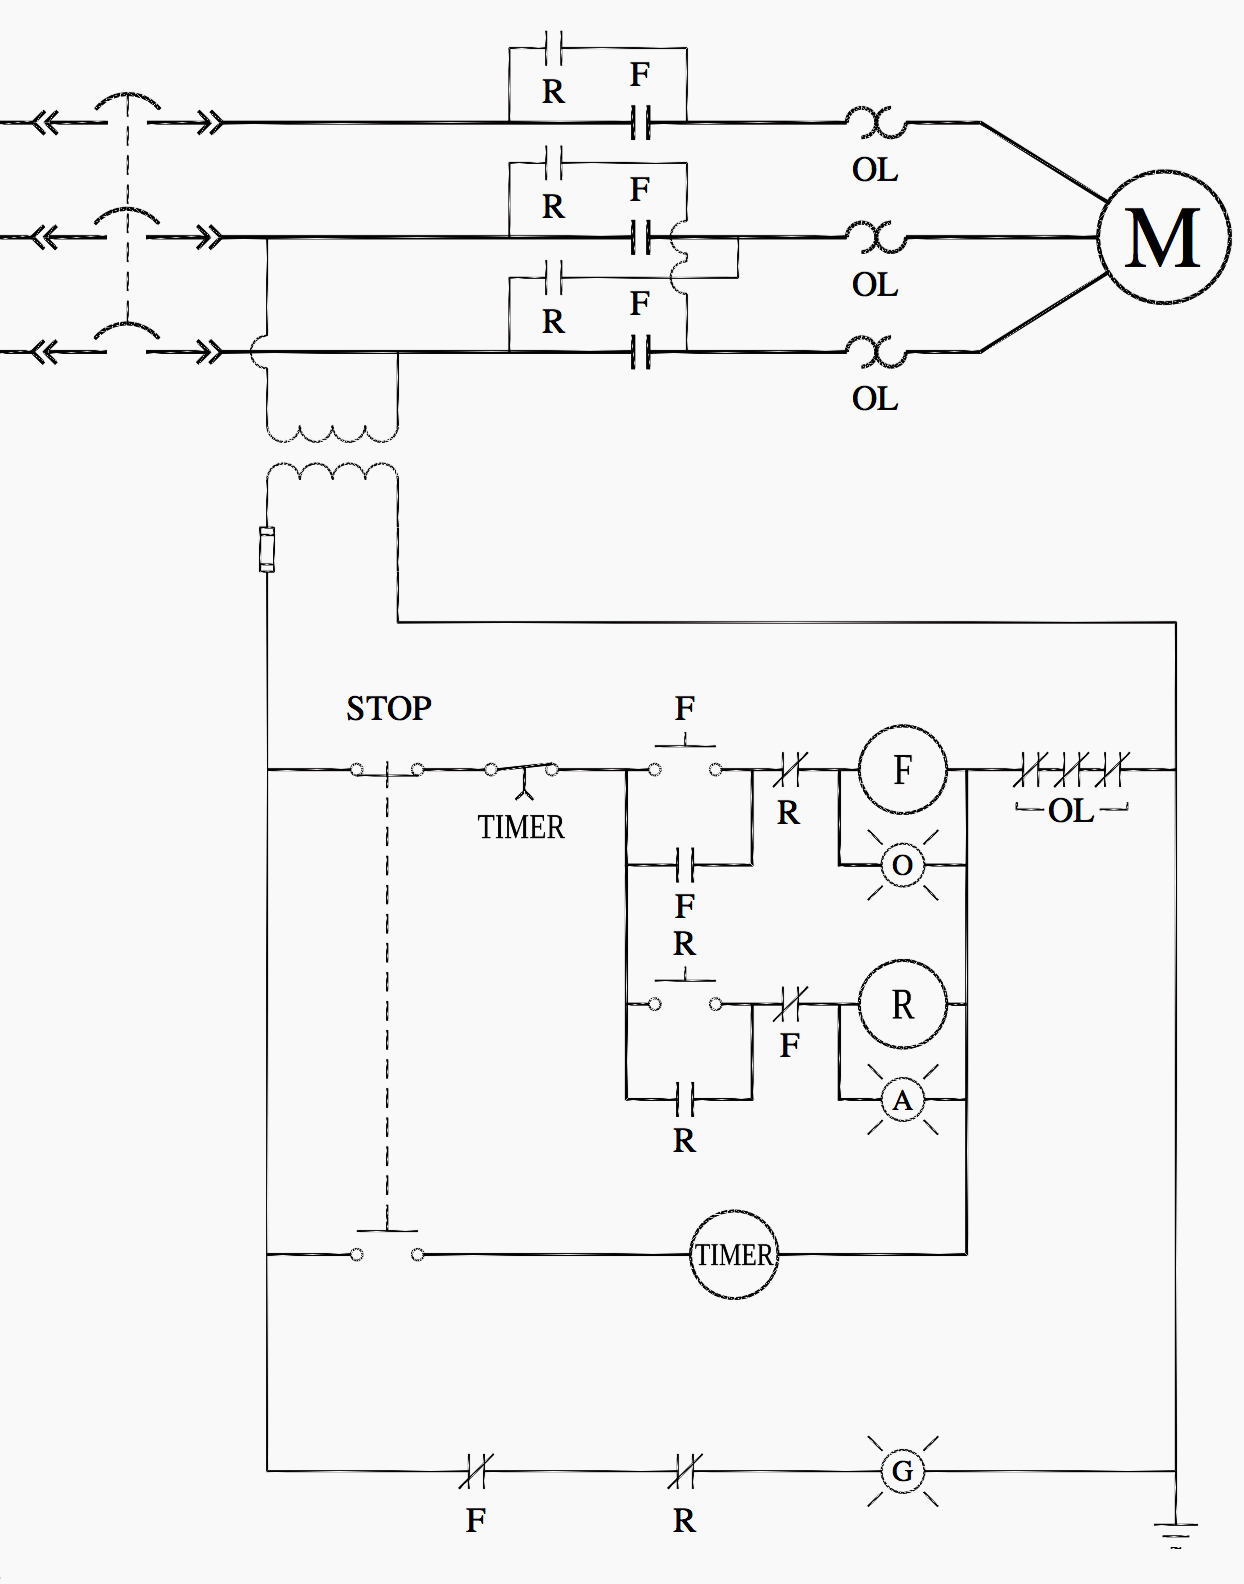 small resolution of anti plugging circuit automation in 2019 ladder logic on hand drill circuit diagram on simple motor control ladder diagram